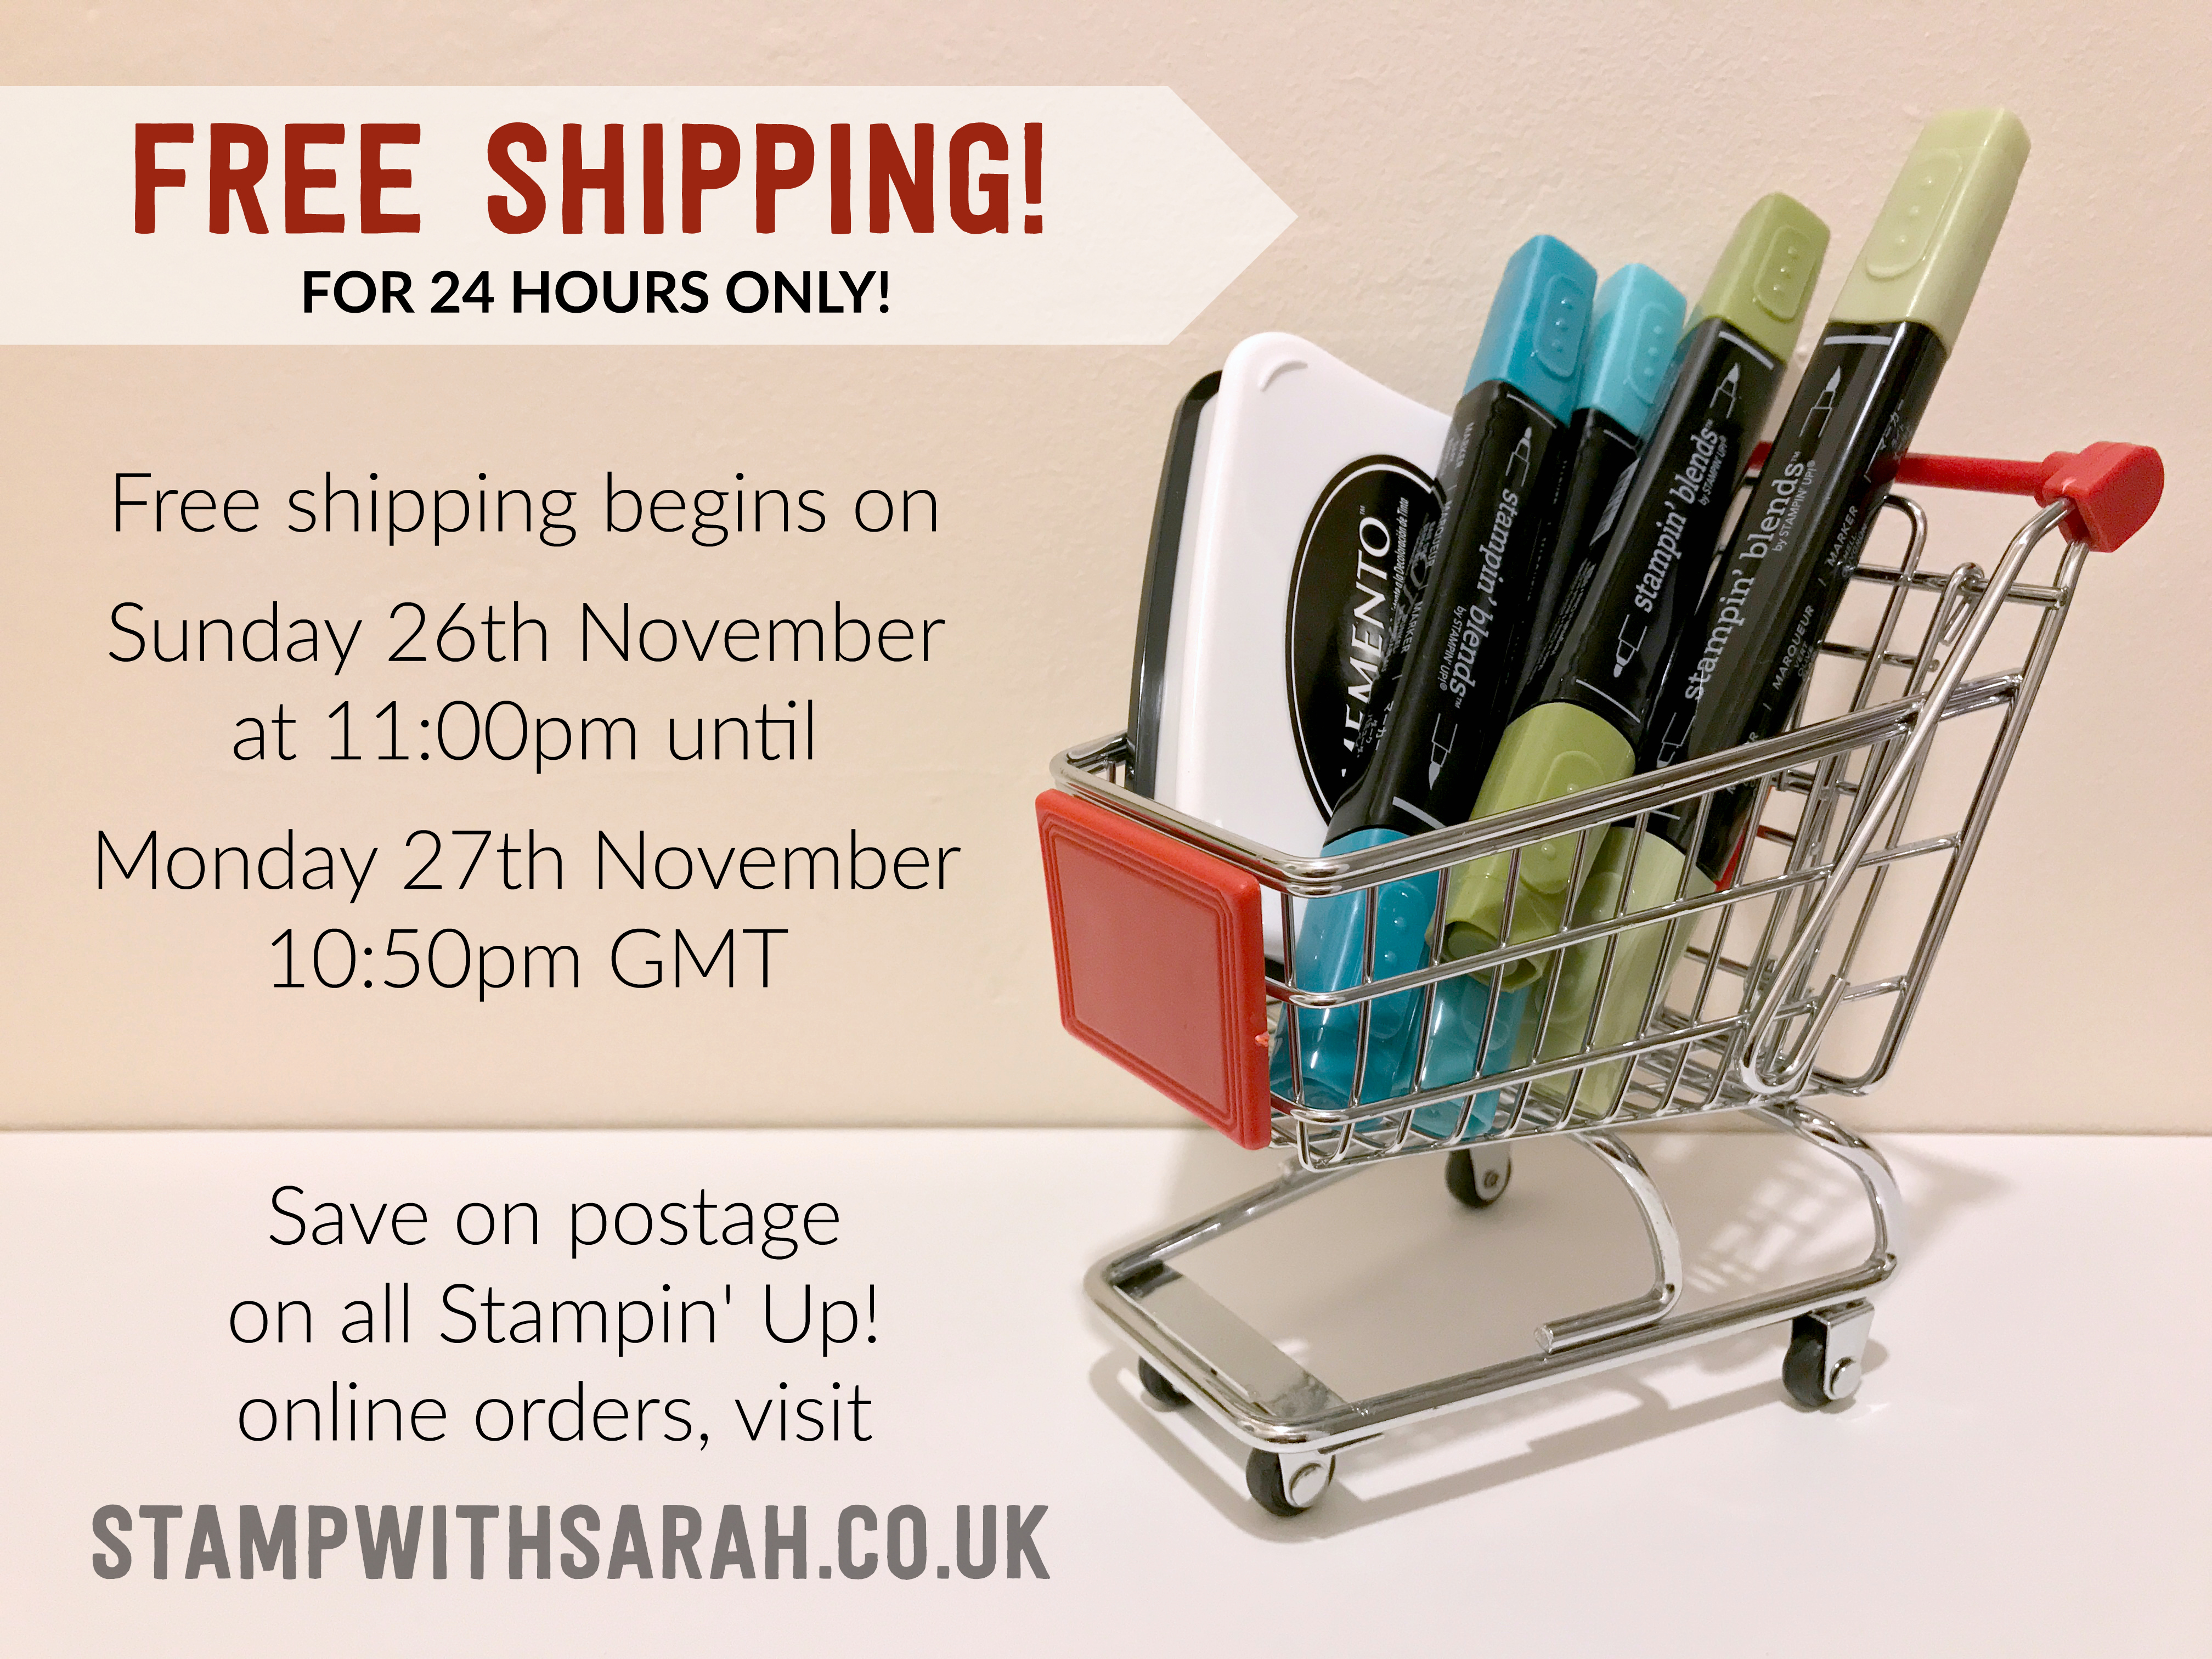 FREE SHIPPING FOR 24 HOURS ONLY!